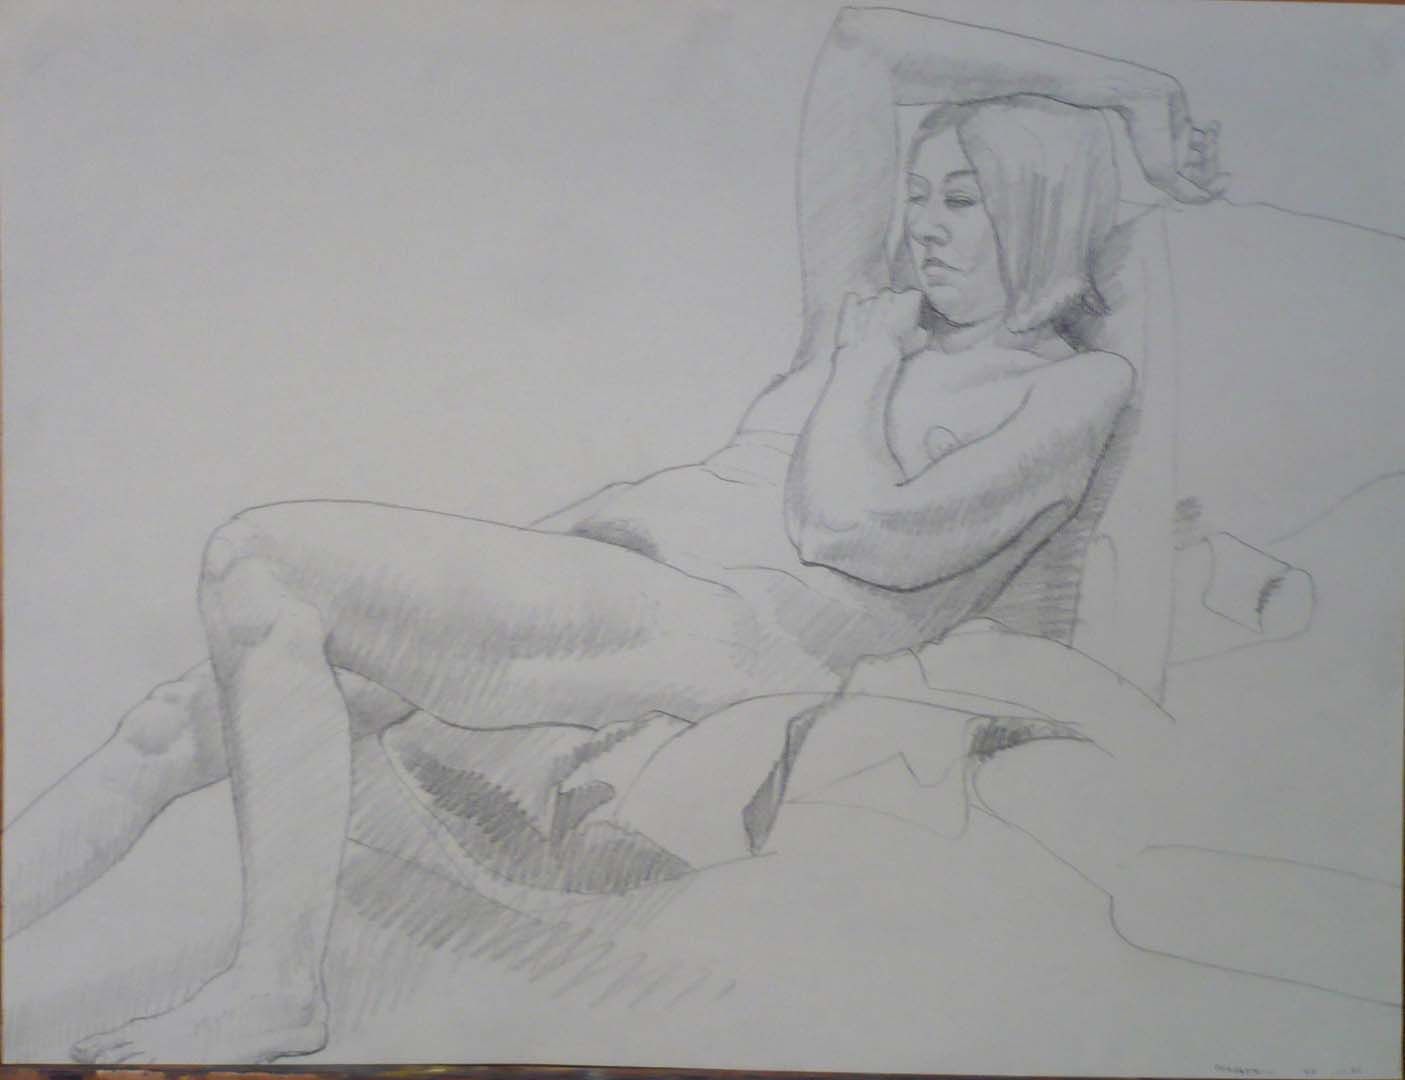 1969 Leaning Model on Drape Pencil 18 x 23.75